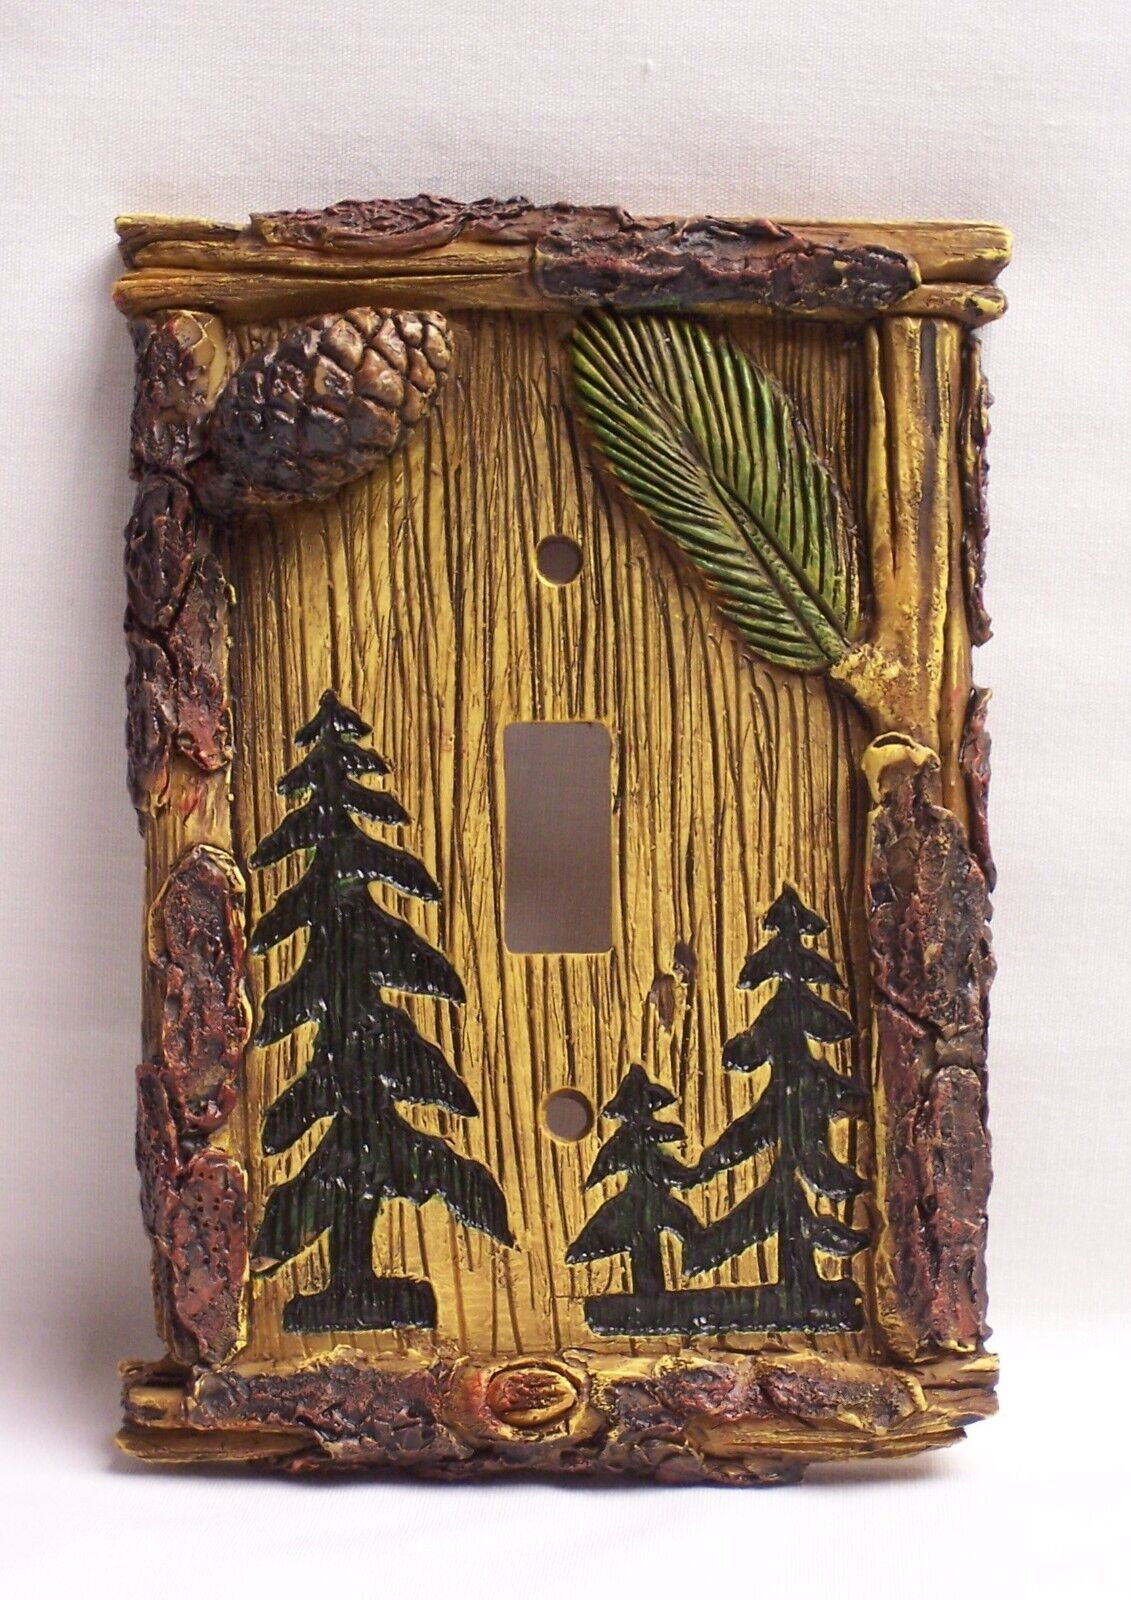 rustic light switch covers rustic wood of 1only available pine tree single light switch cover rustic home cabin decor nau